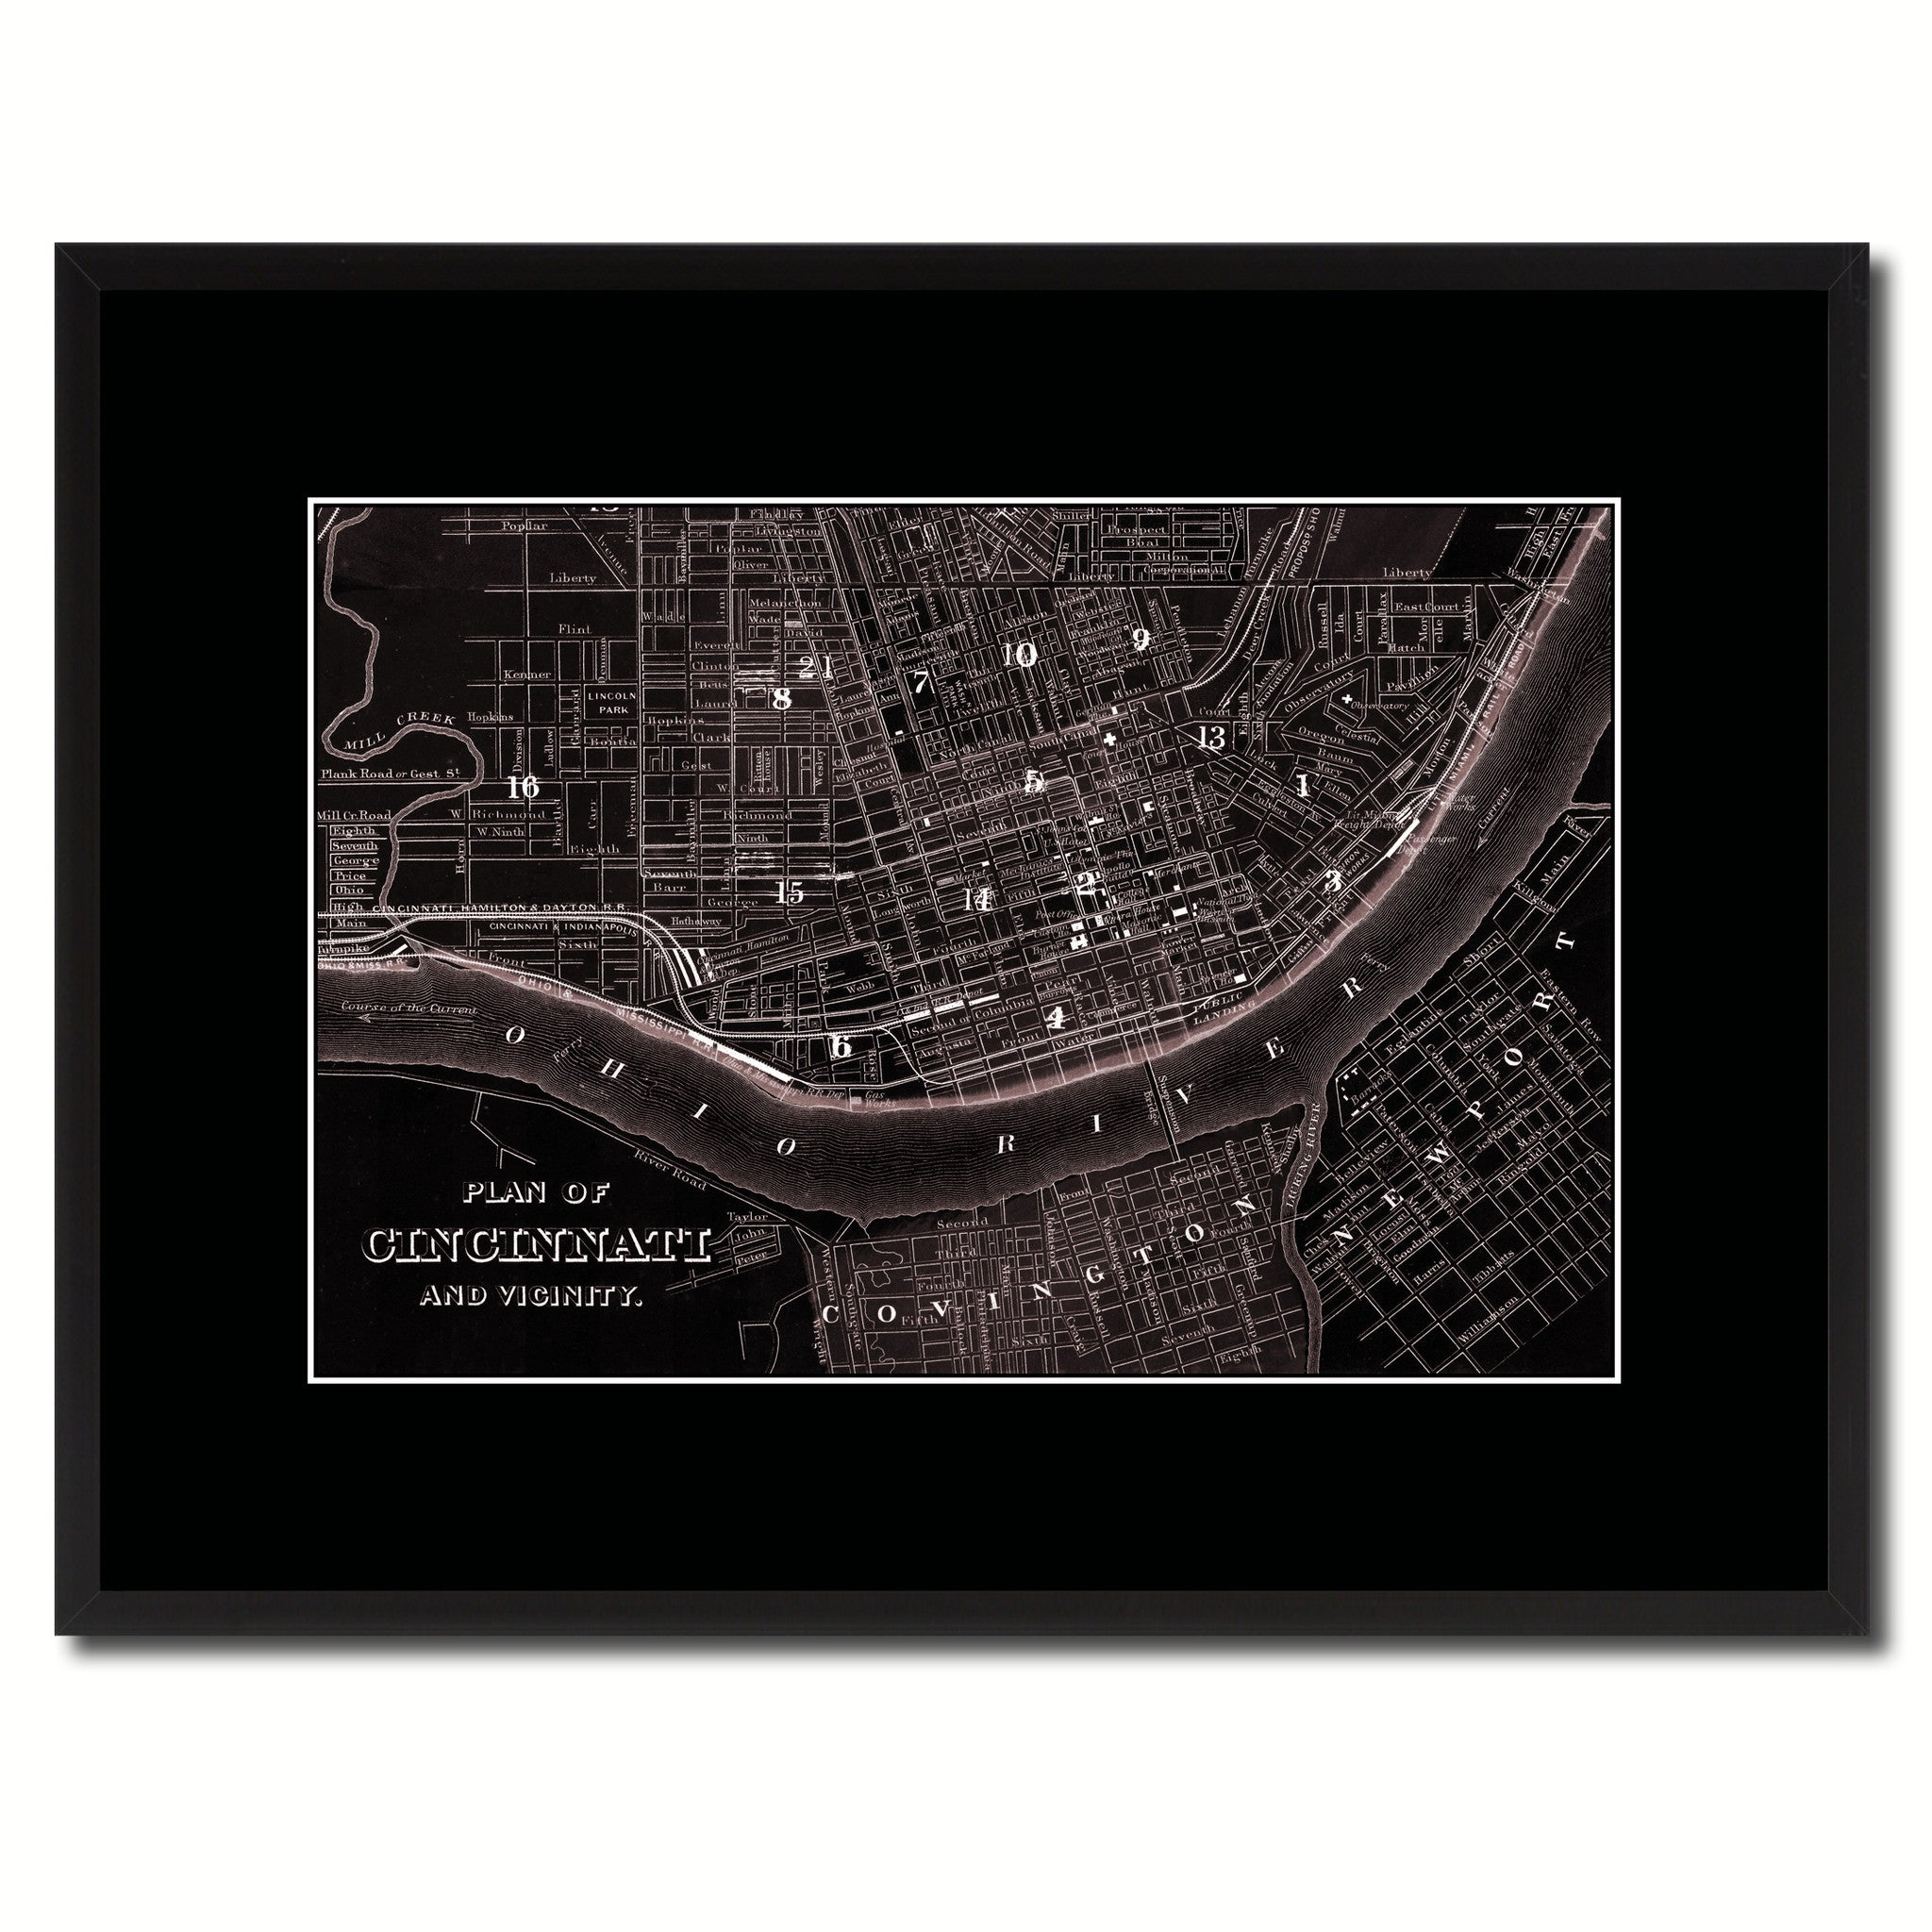 Cincinnati Vintage Vivid Sepia Map Canvas Print, Picture Frames Home Decor Wall Art Decoration Gifts